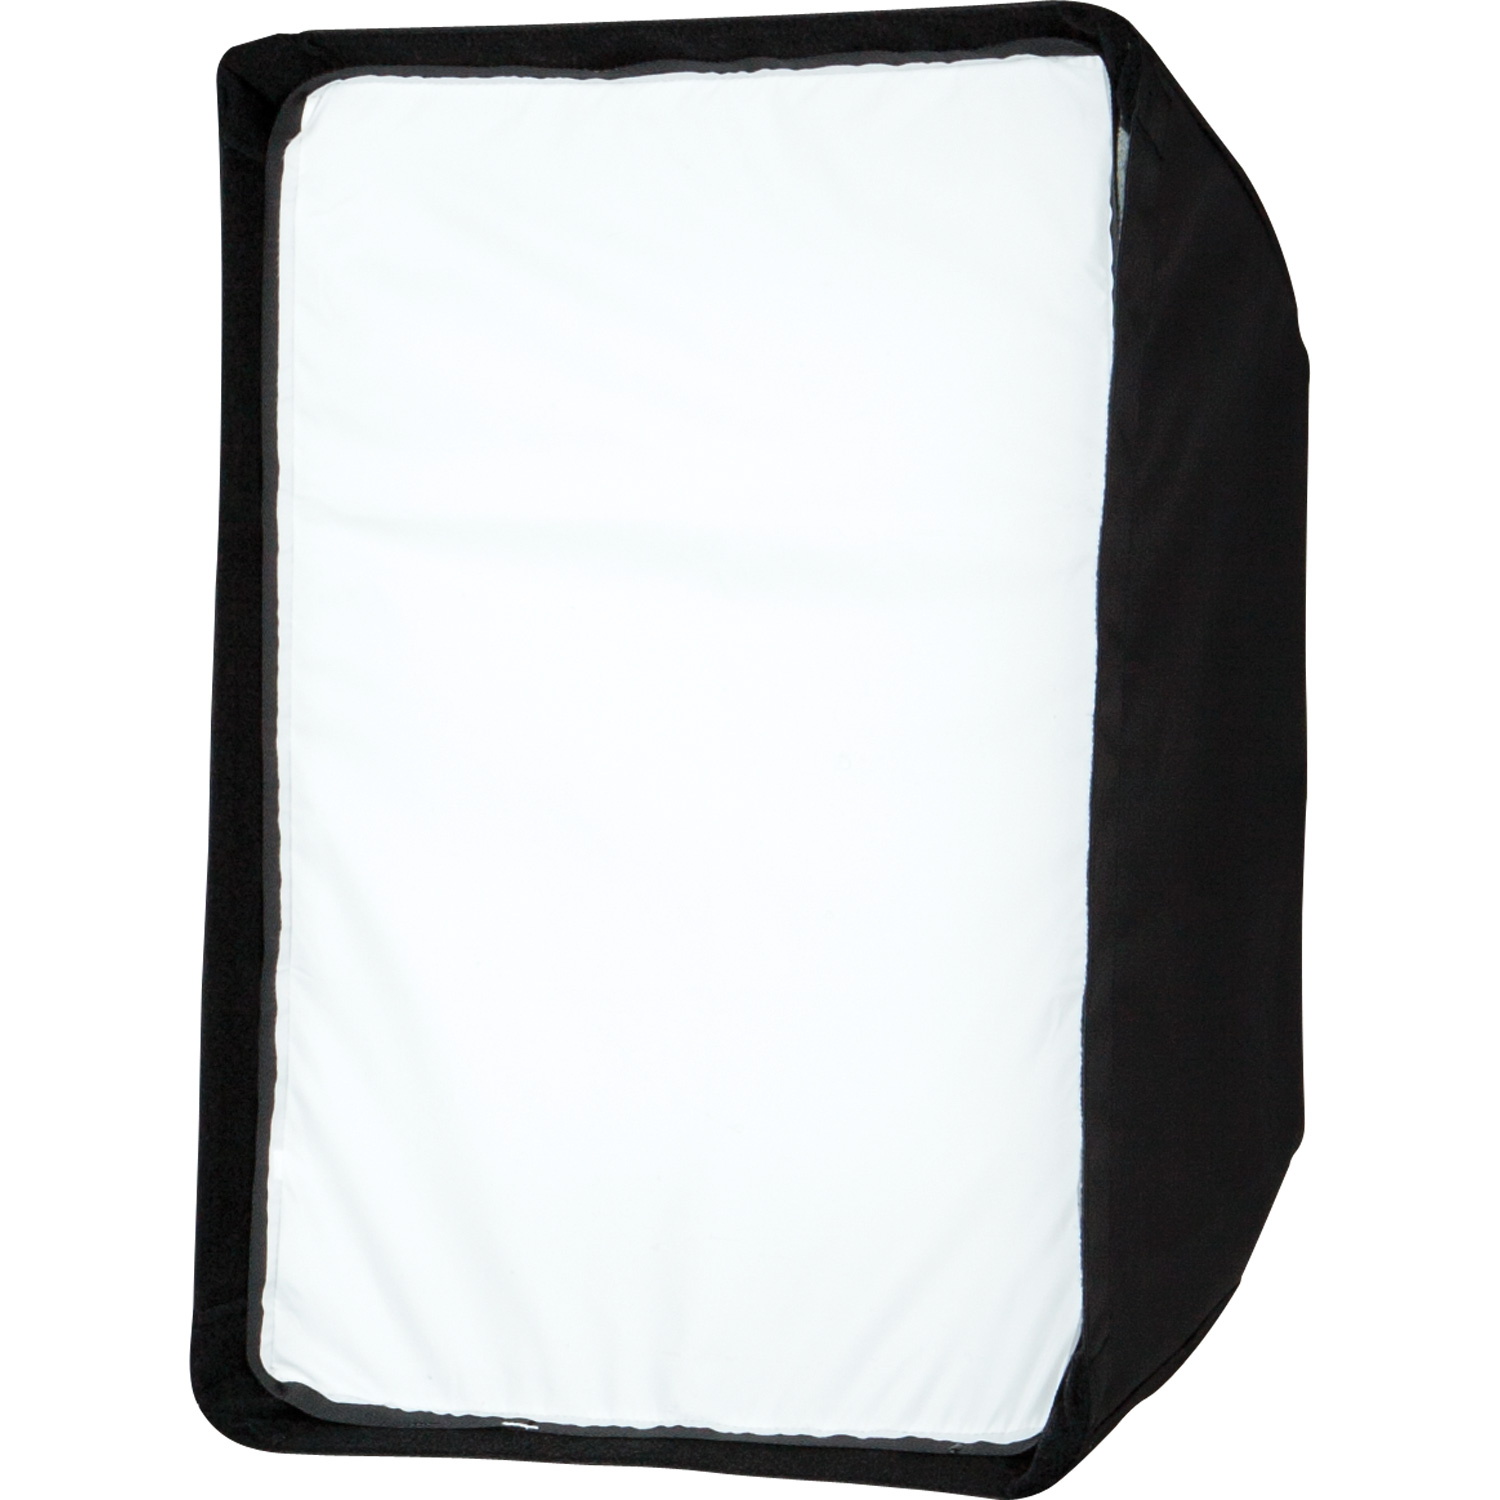 Pro 16-in. x 22-in. Softbox with Silver Interior